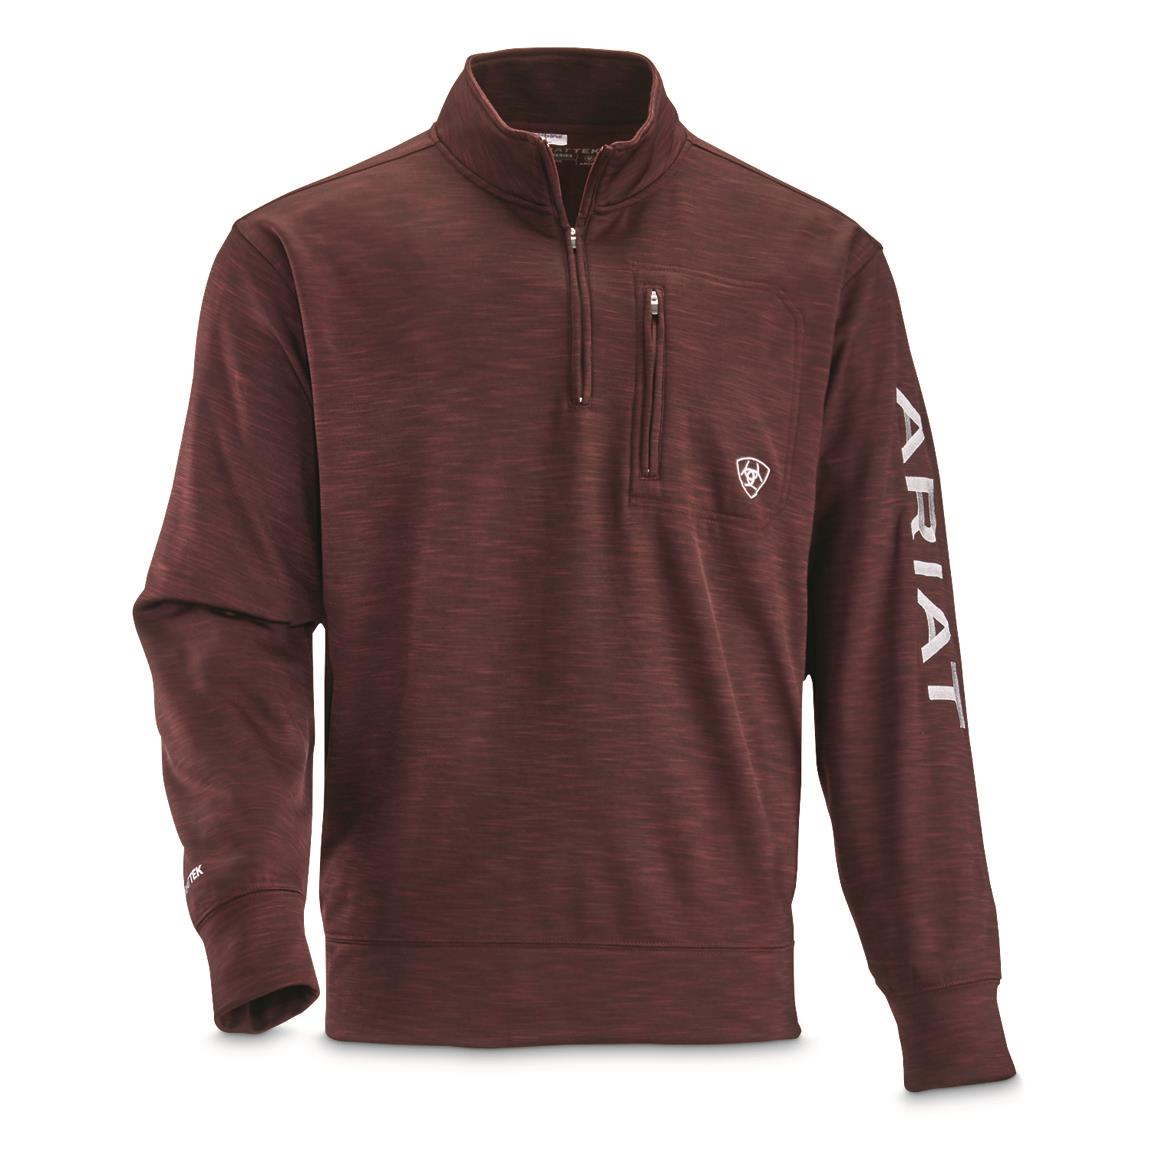 Ariat Men's Team Logo Quarter-zip Pullover, Malbec/Pearl Gray Logo